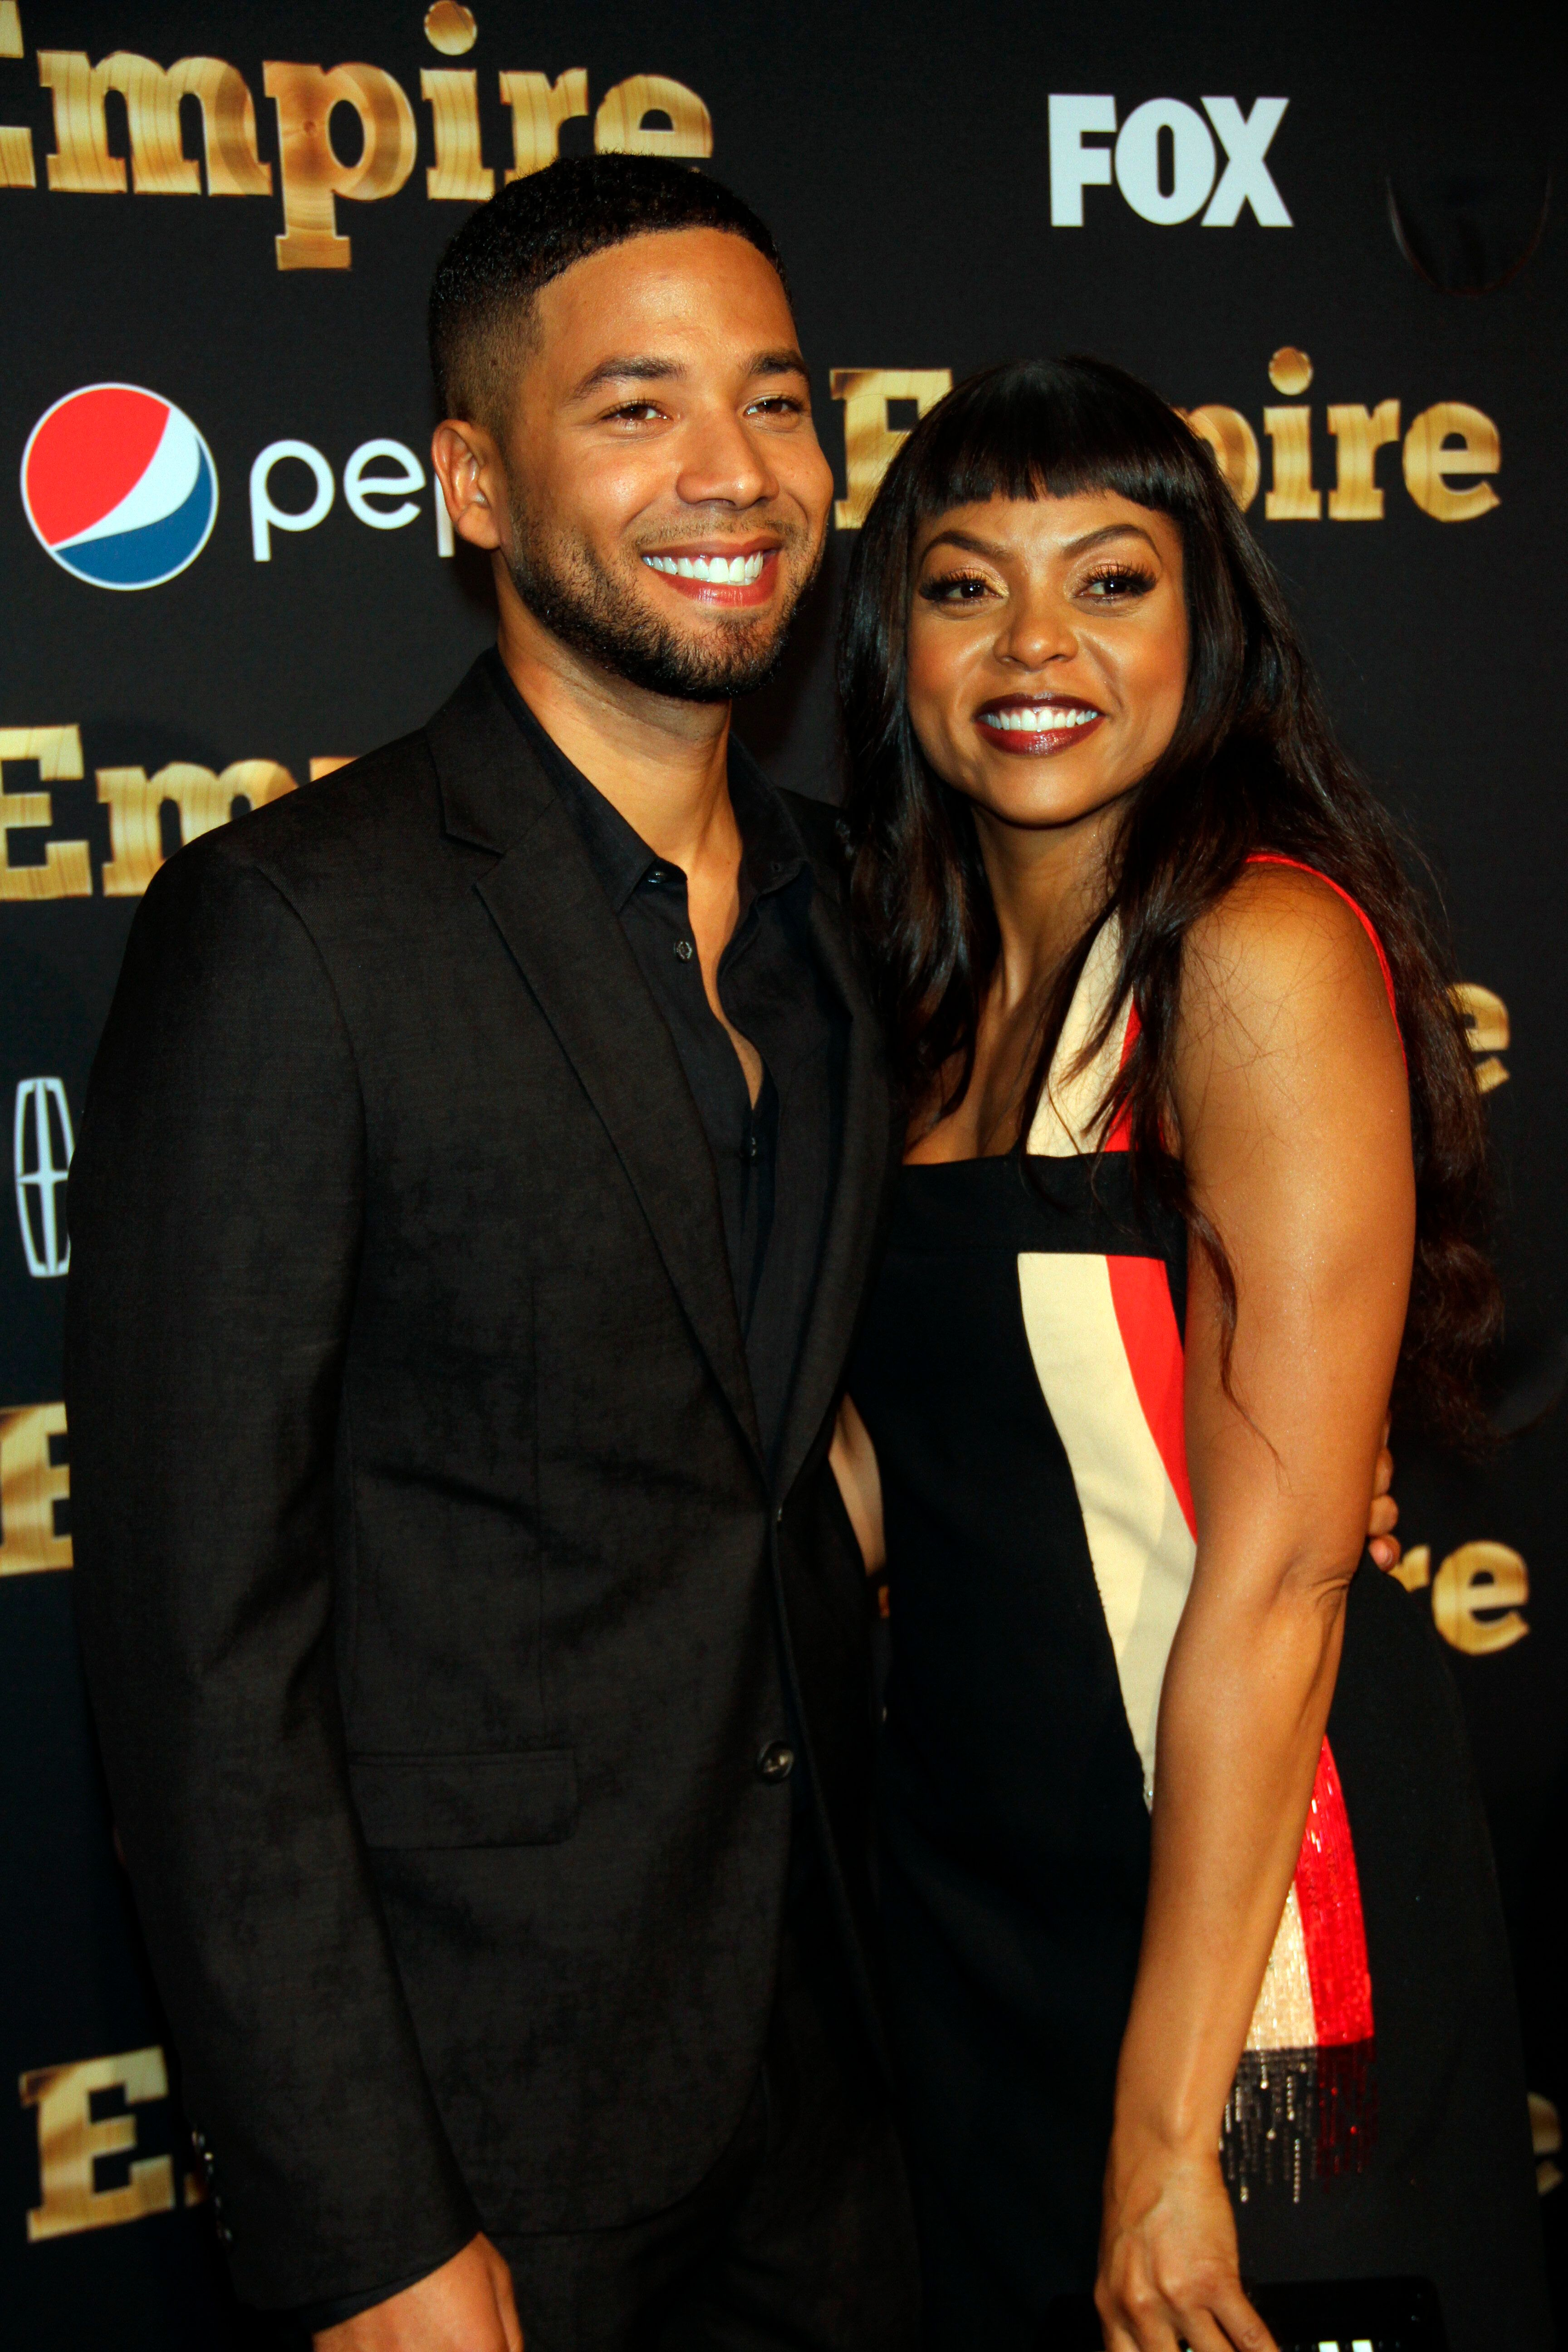 Fox's 'Empire' Is Ending After 6